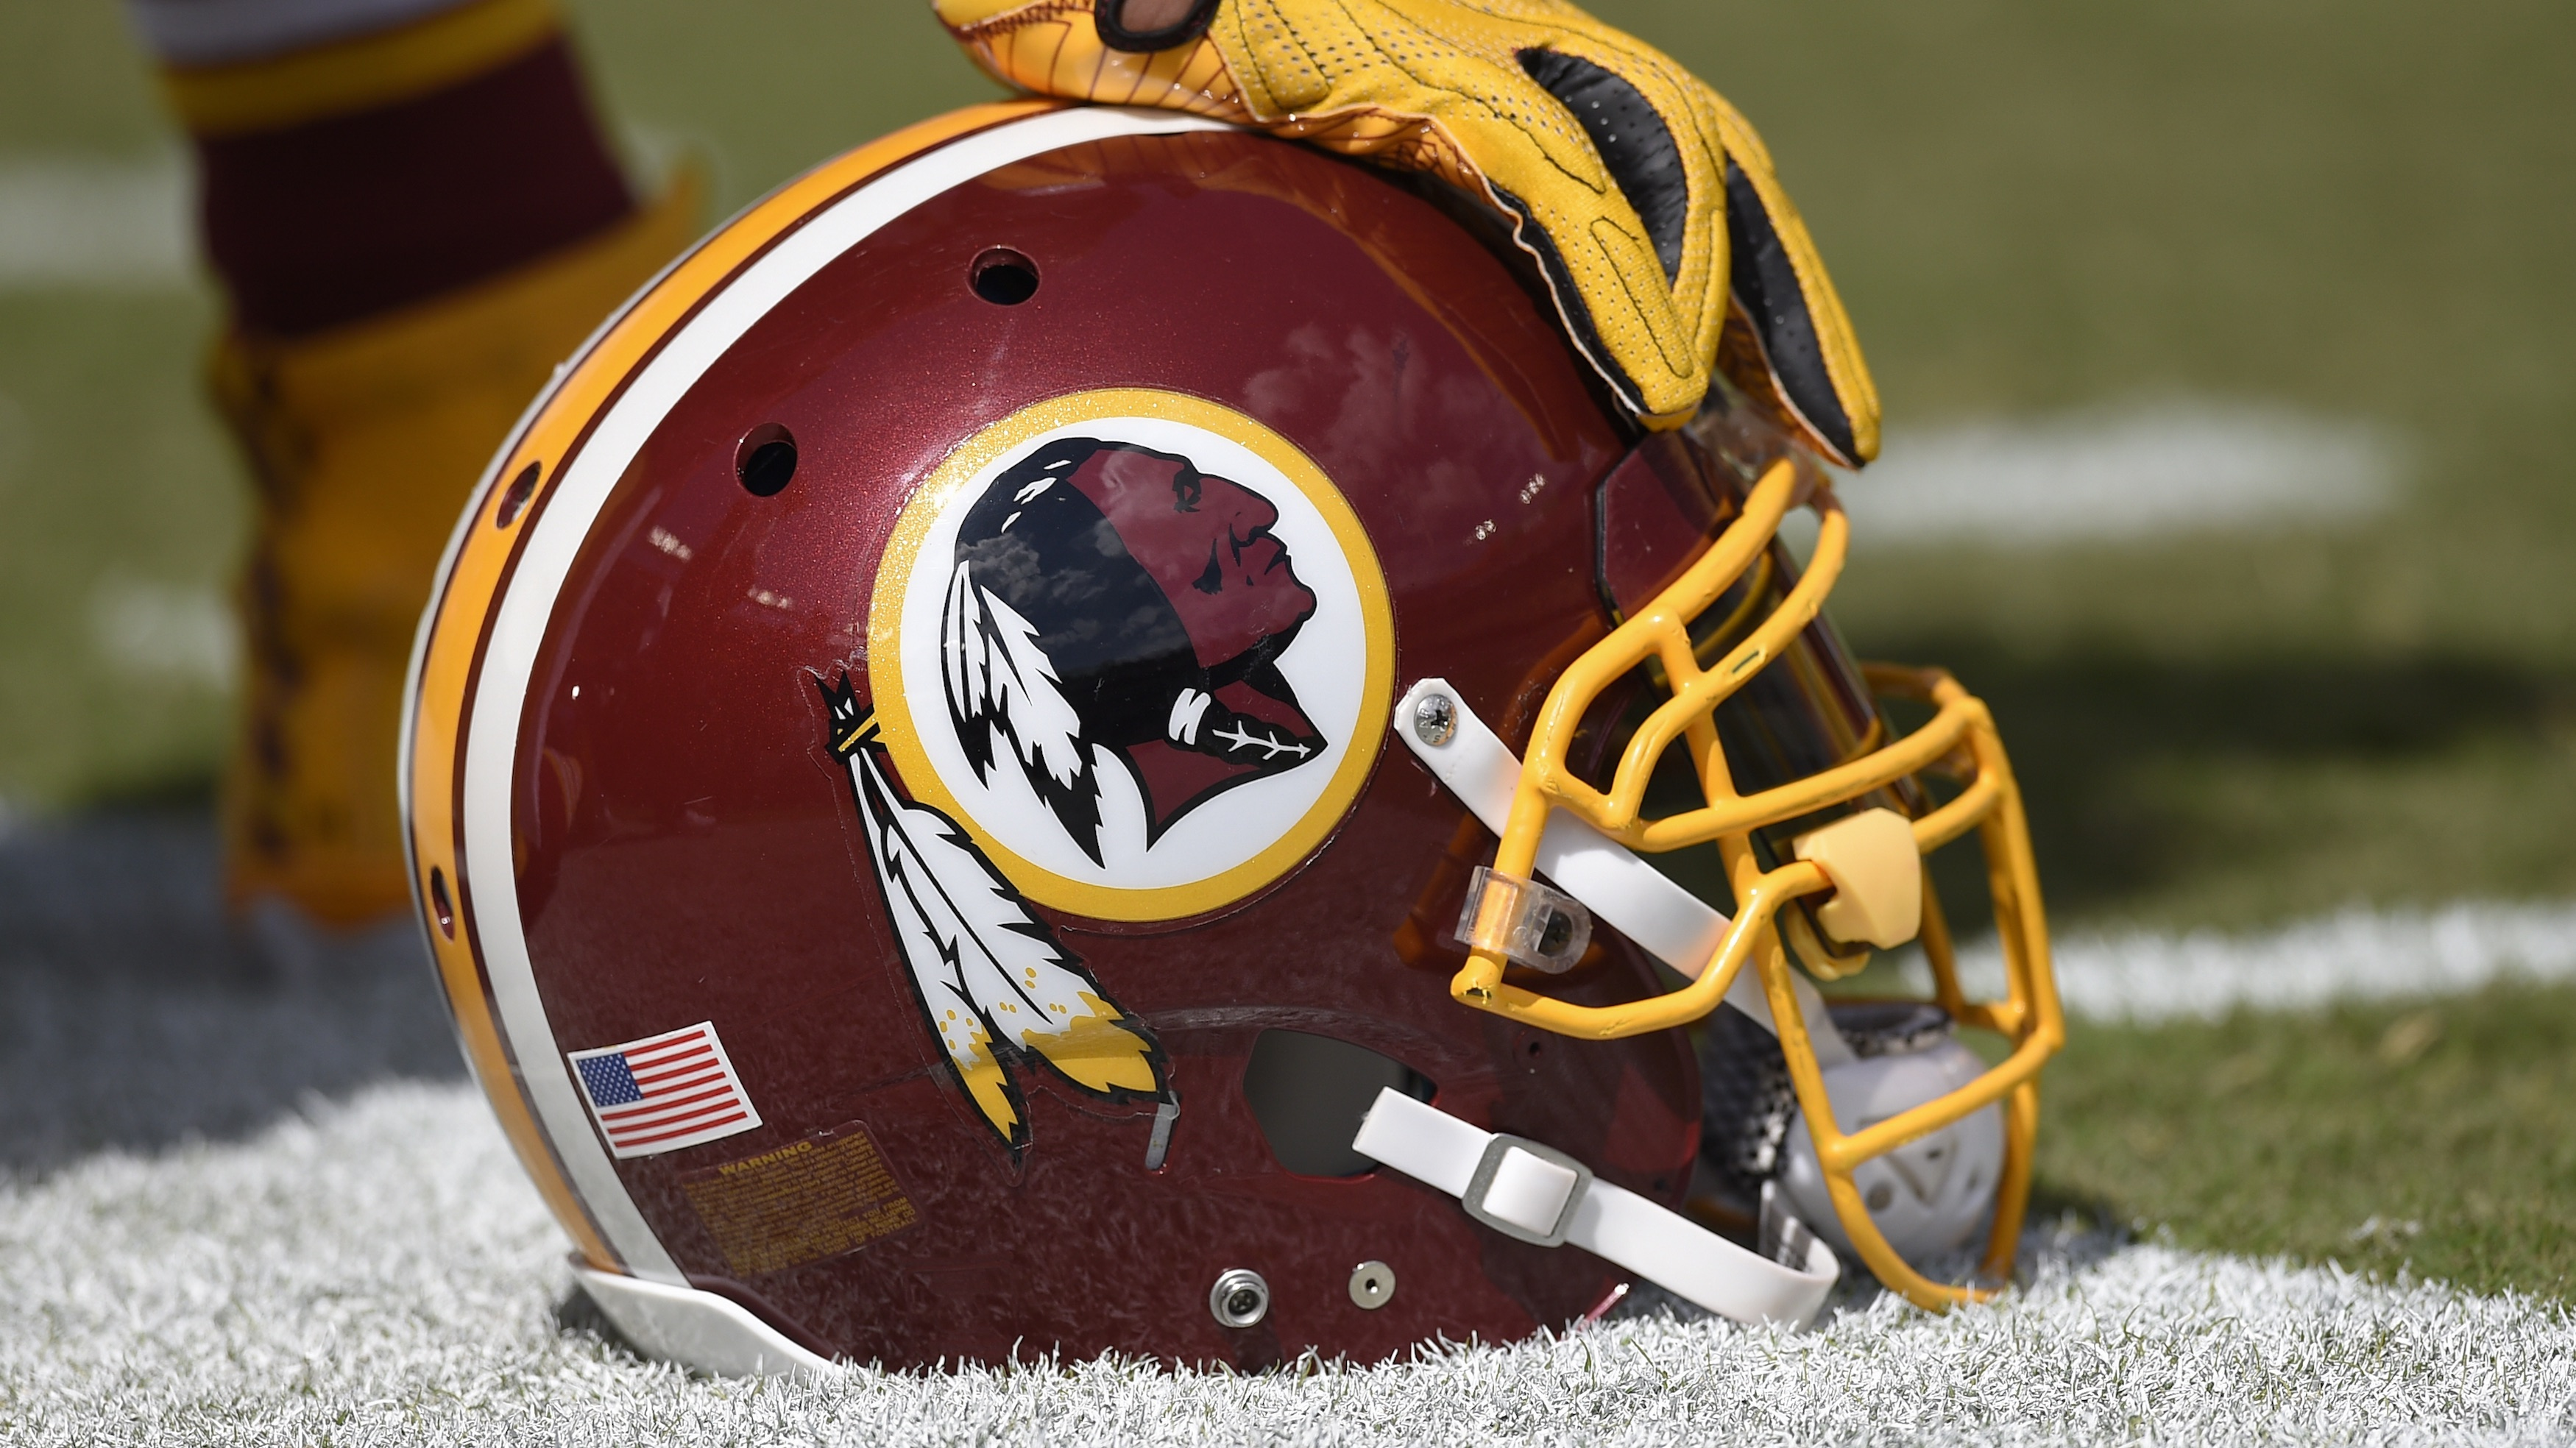 Native American communities object to DC's NFL franchise, saying the imagery is stereotypical and the name is an epithet.